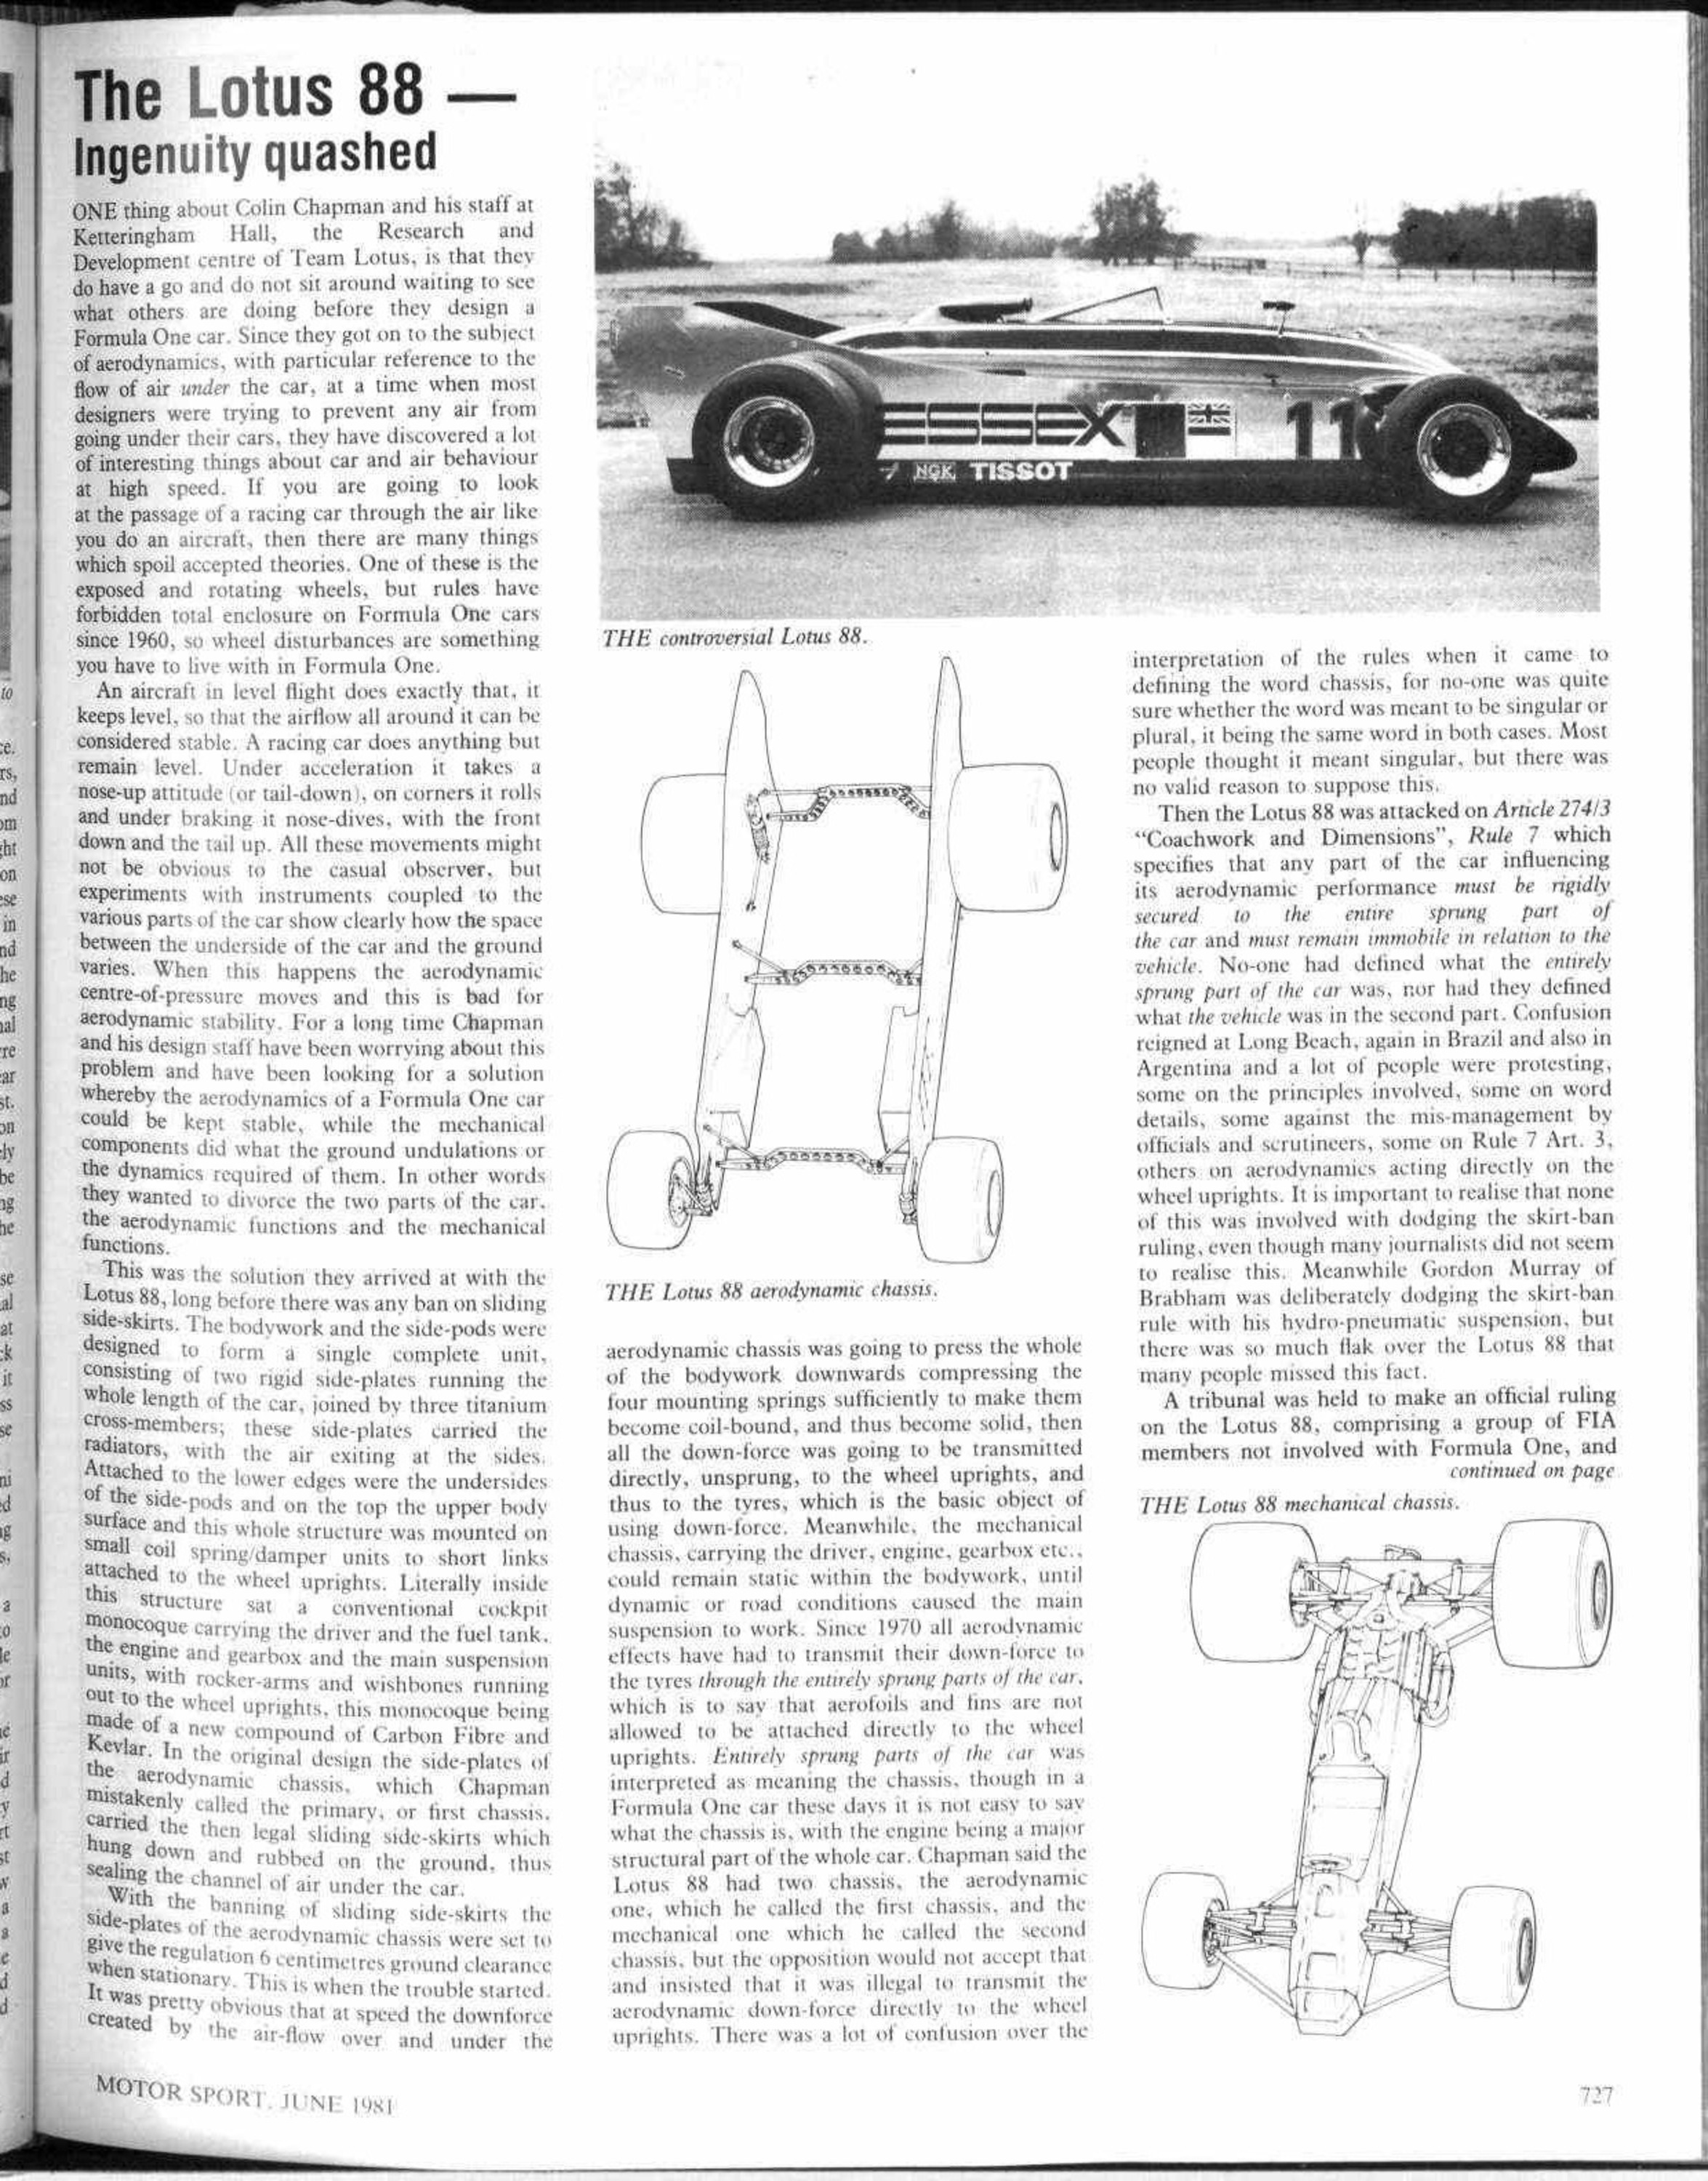 the lotus 88 ingenuity quashed image